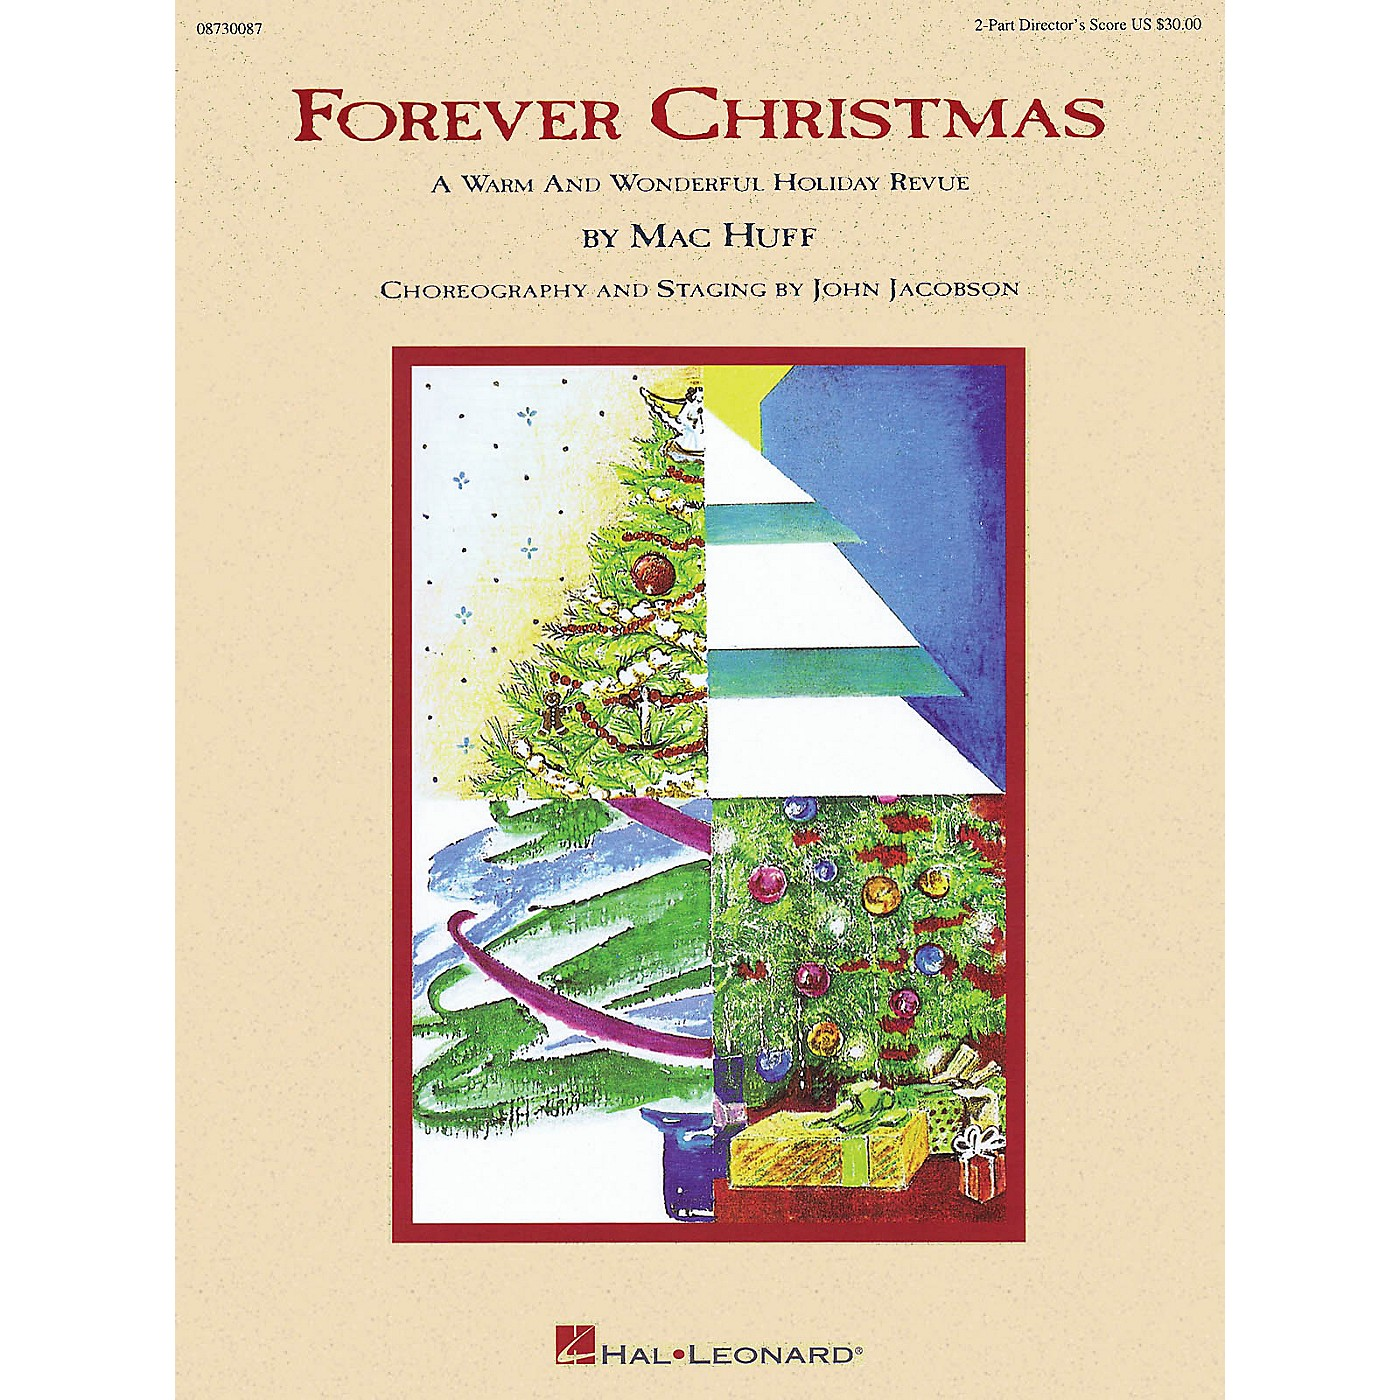 Hal Leonard Forever Christmas (Holiday Revue) 2-Part Score arranged by Mac Huff thumbnail